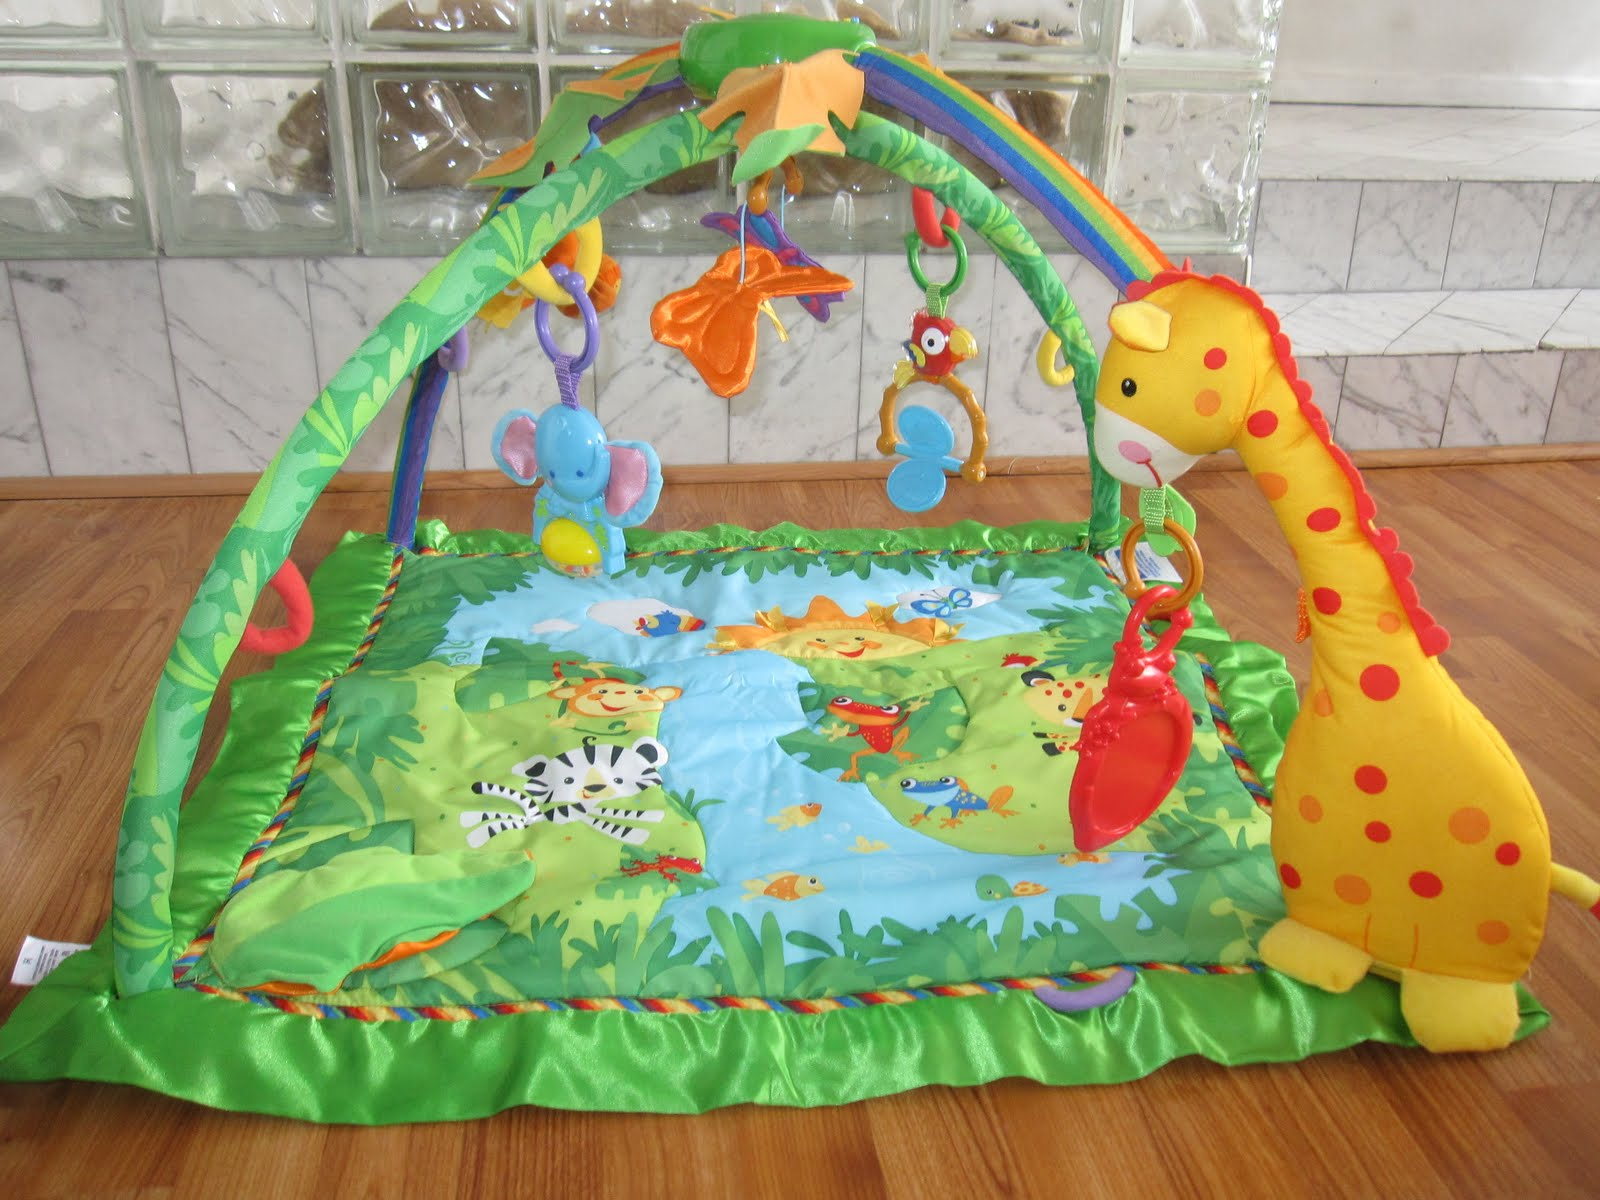 Moving sale baby gear toys fisher price rainforest deluxe gym 35